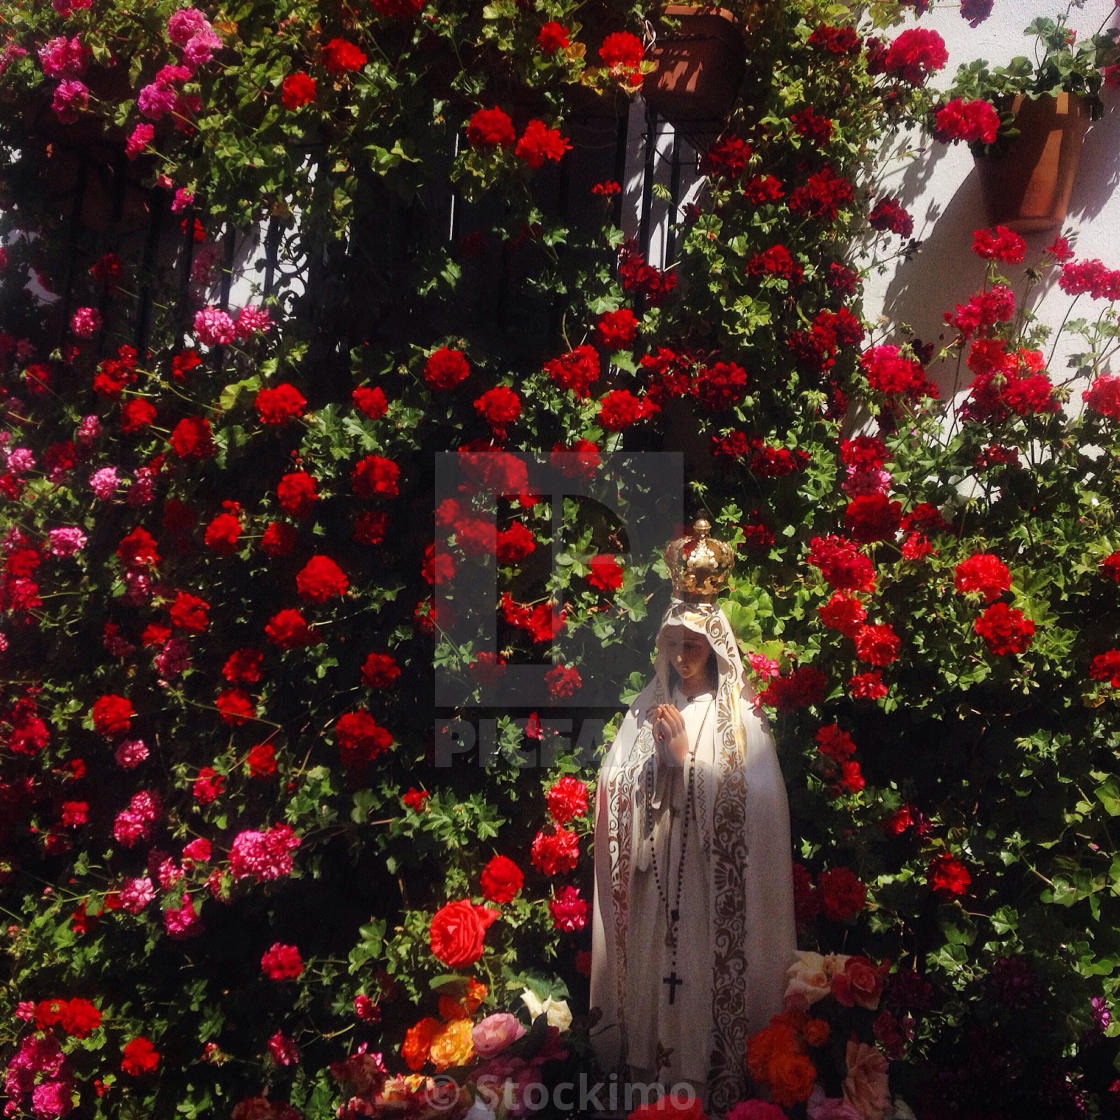 An Image Of Our Lady Of Fatima Surrounded By Flowers In El Gastor